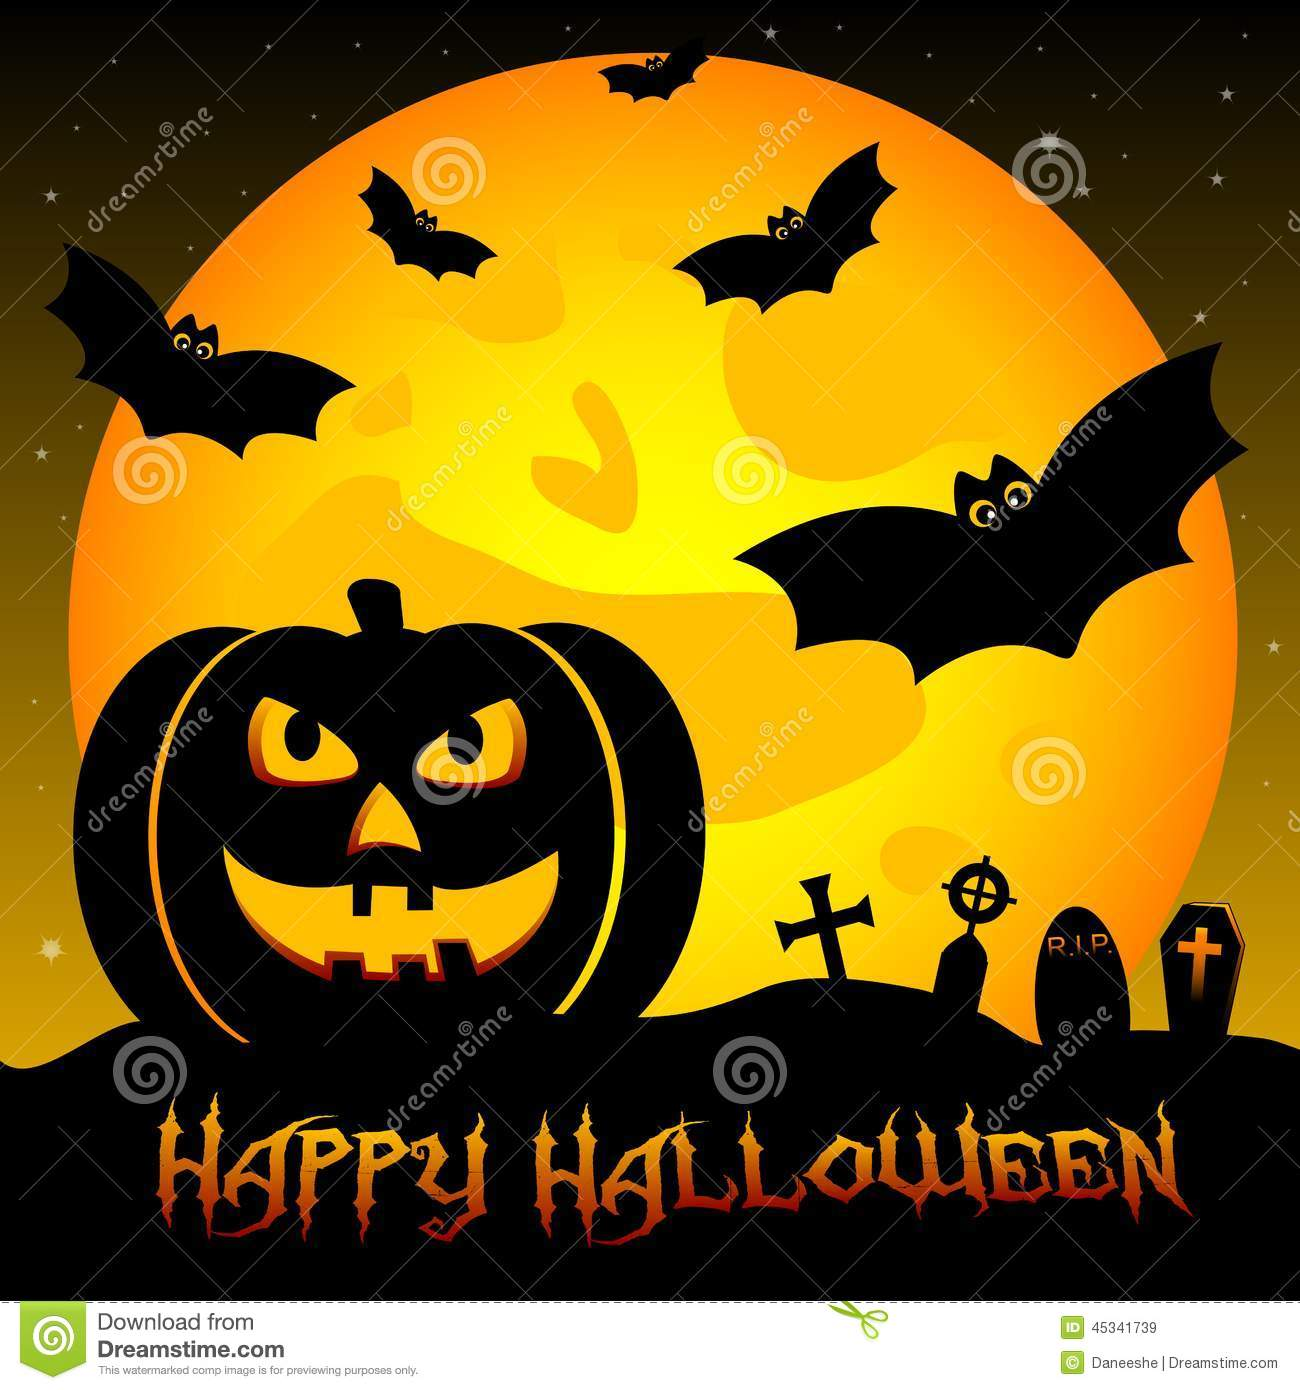 Festive Illustration On Theme Of Halloween. Wishes For Happy Halloween.  Trick Or Treat. Moon, Crosses.